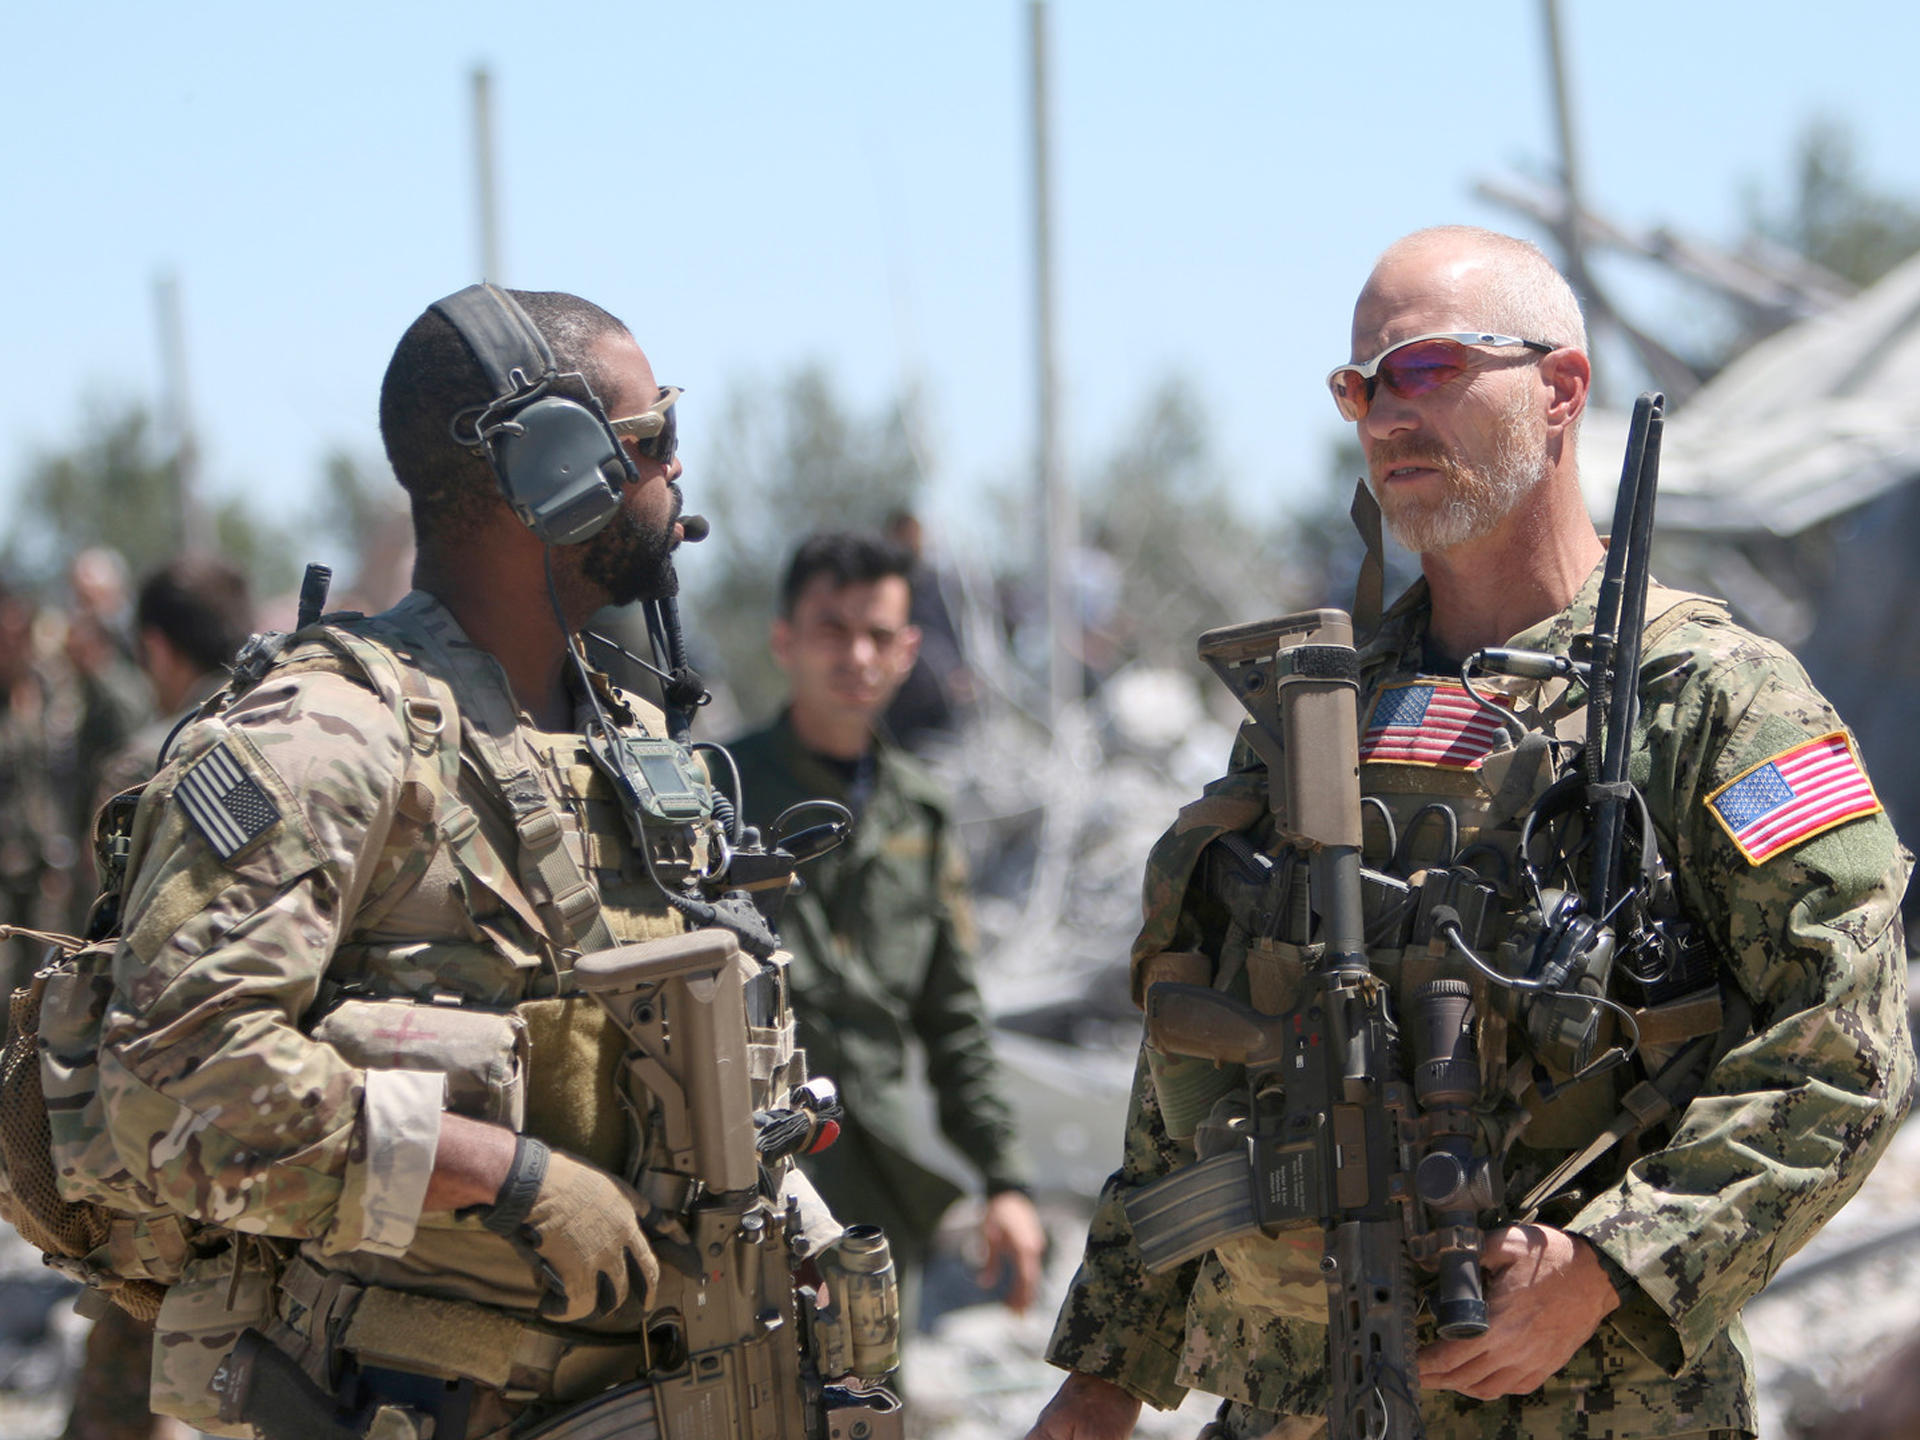 US official: We will stay in Iraq to fight ISIS cells %D9%85%D8%B3%D9%88%D9%94%D9%88%D9%84-%D8%A7%D9%85%D8%B1%D9%8A%D9%83%D9%8A